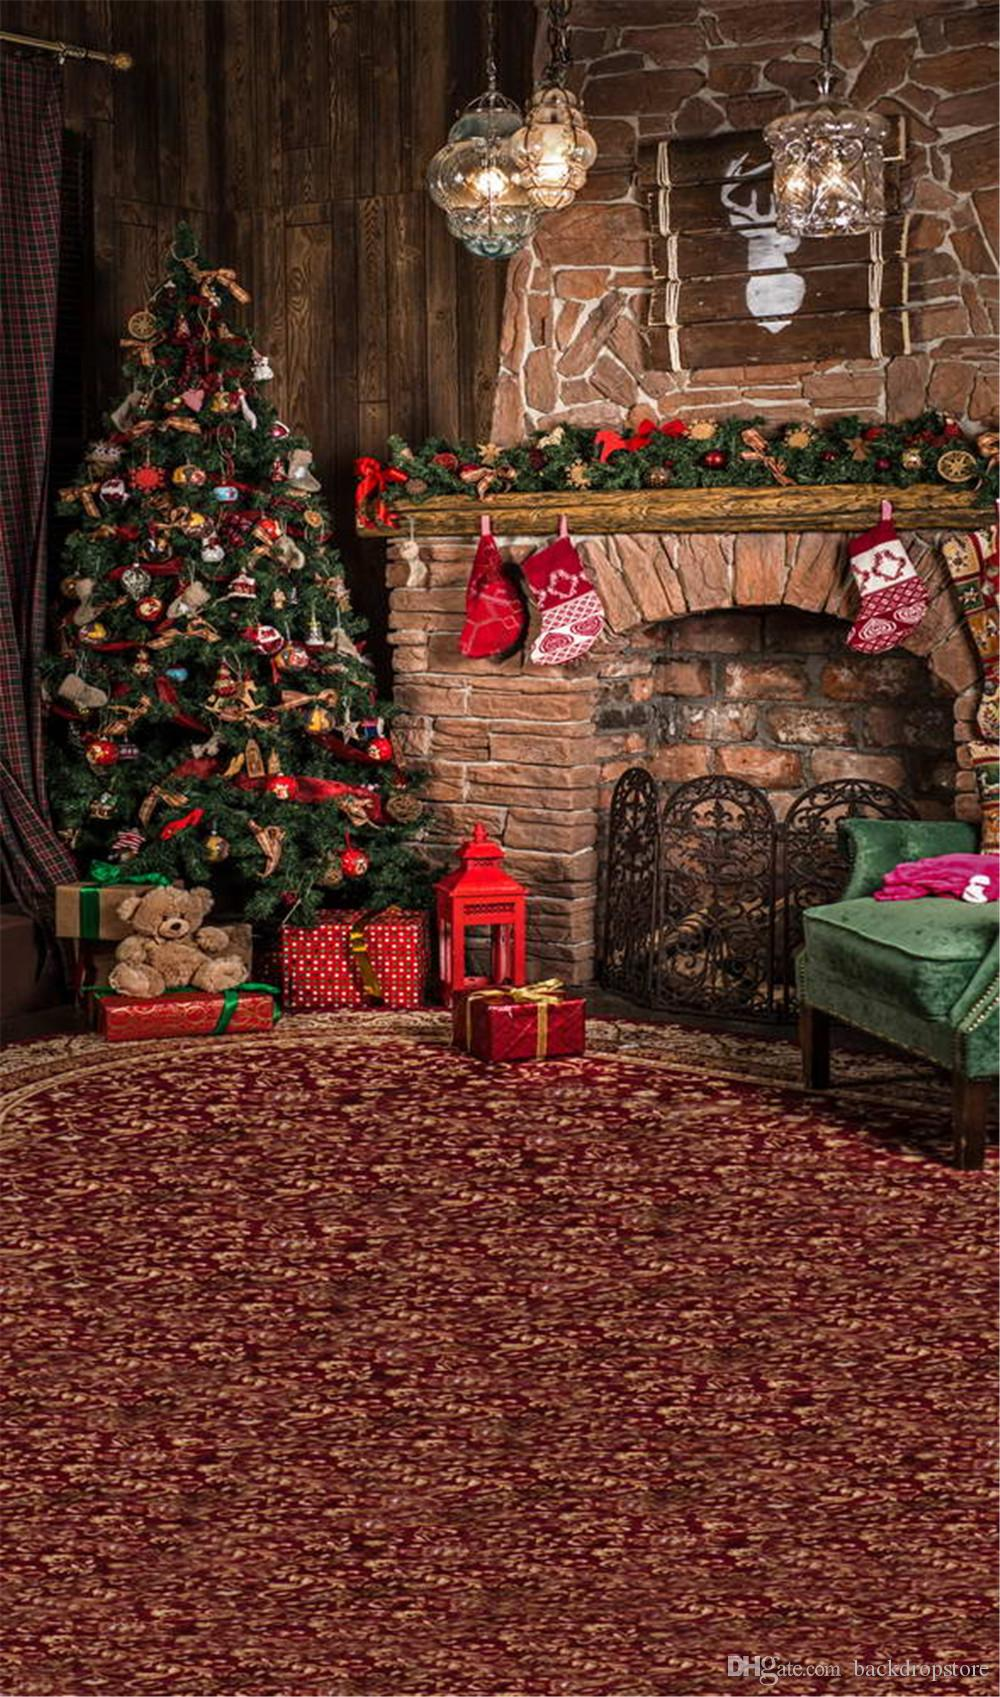 2017 vintage carpet photography backdrops brick fireplace decorated christmas tree toy bear gift boxes crystal lanterns kids photo background from - Bear Christmas Tree